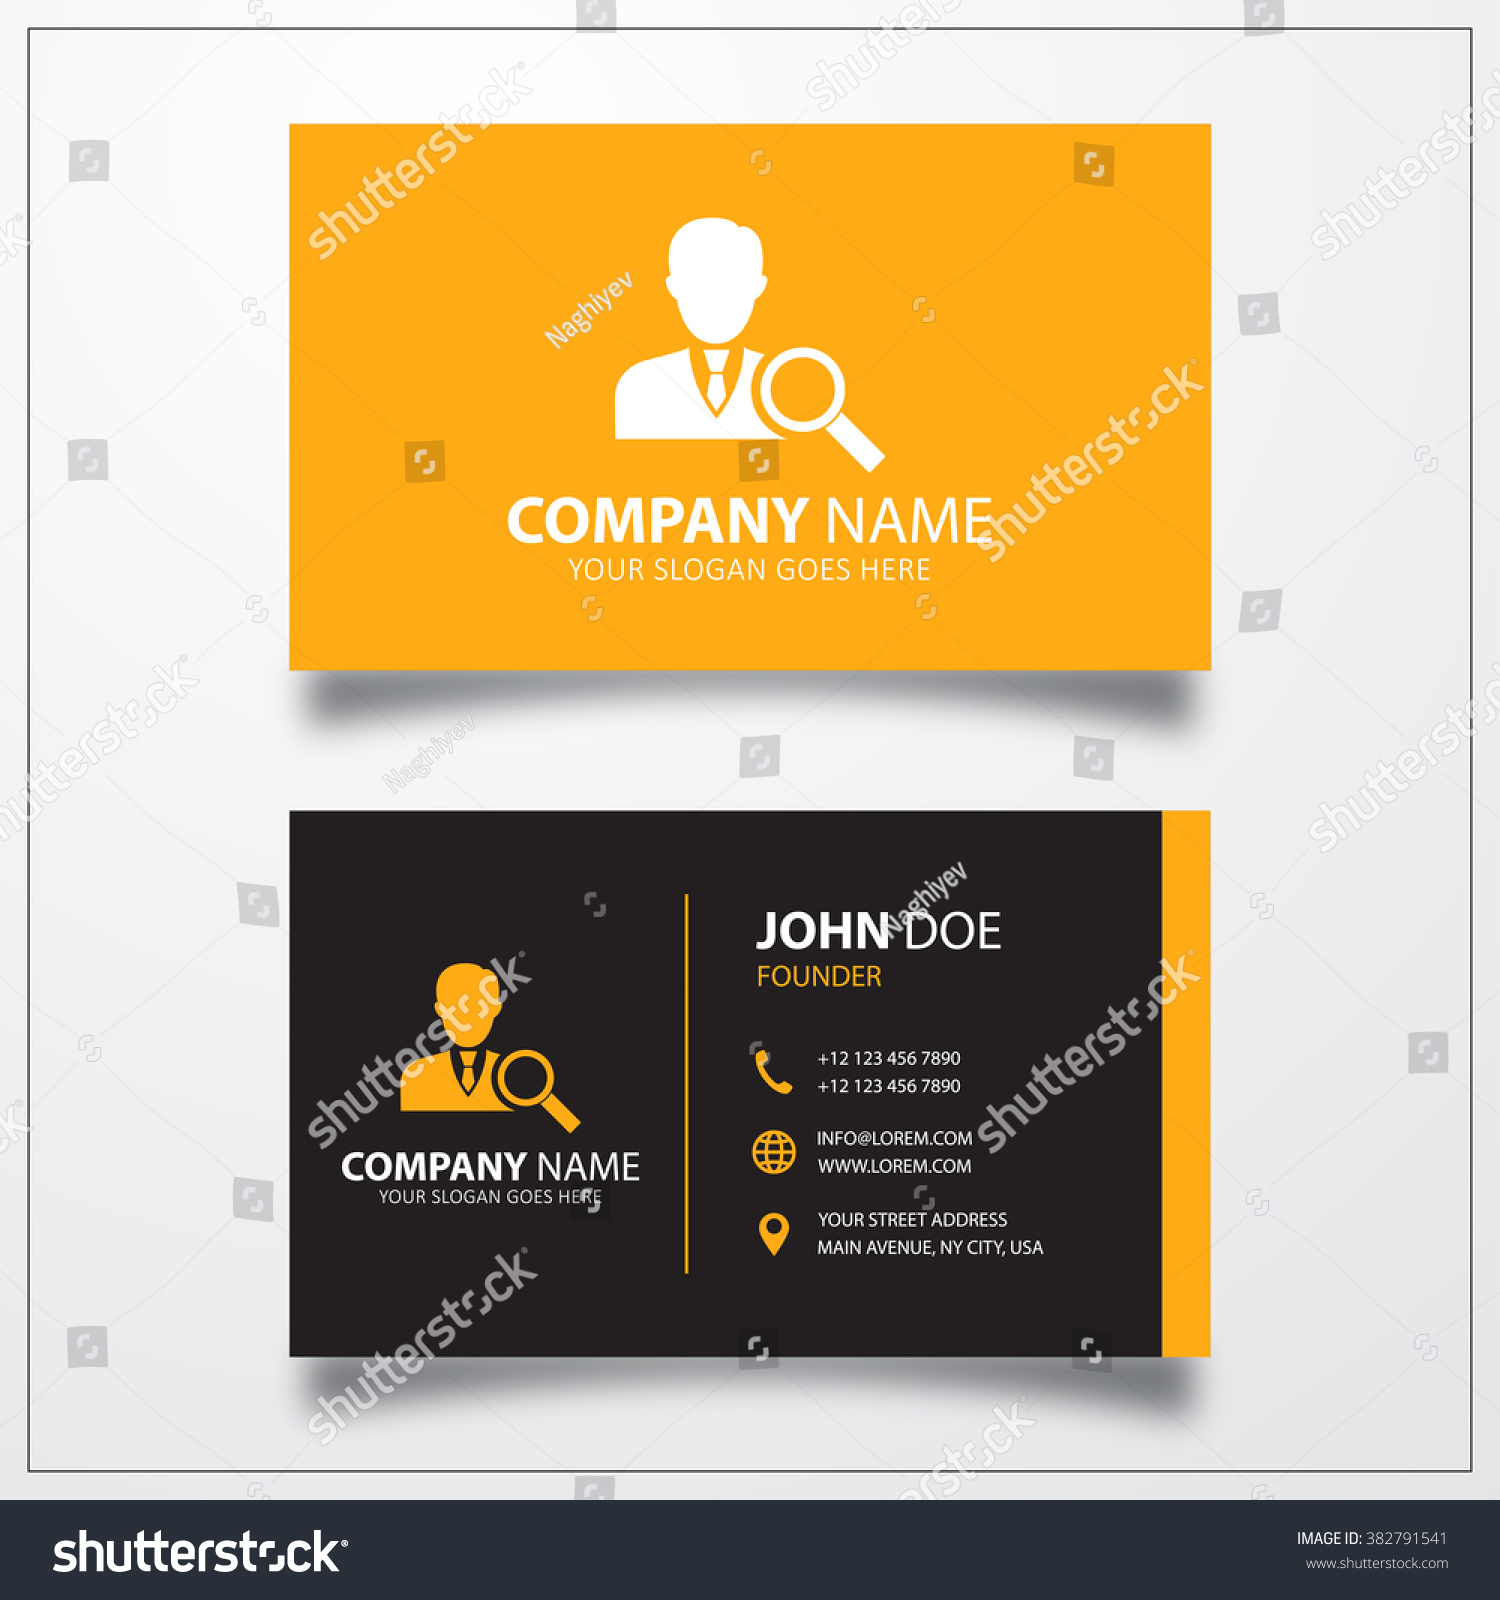 job search icon business card template stock vector illustration job search icon business card template